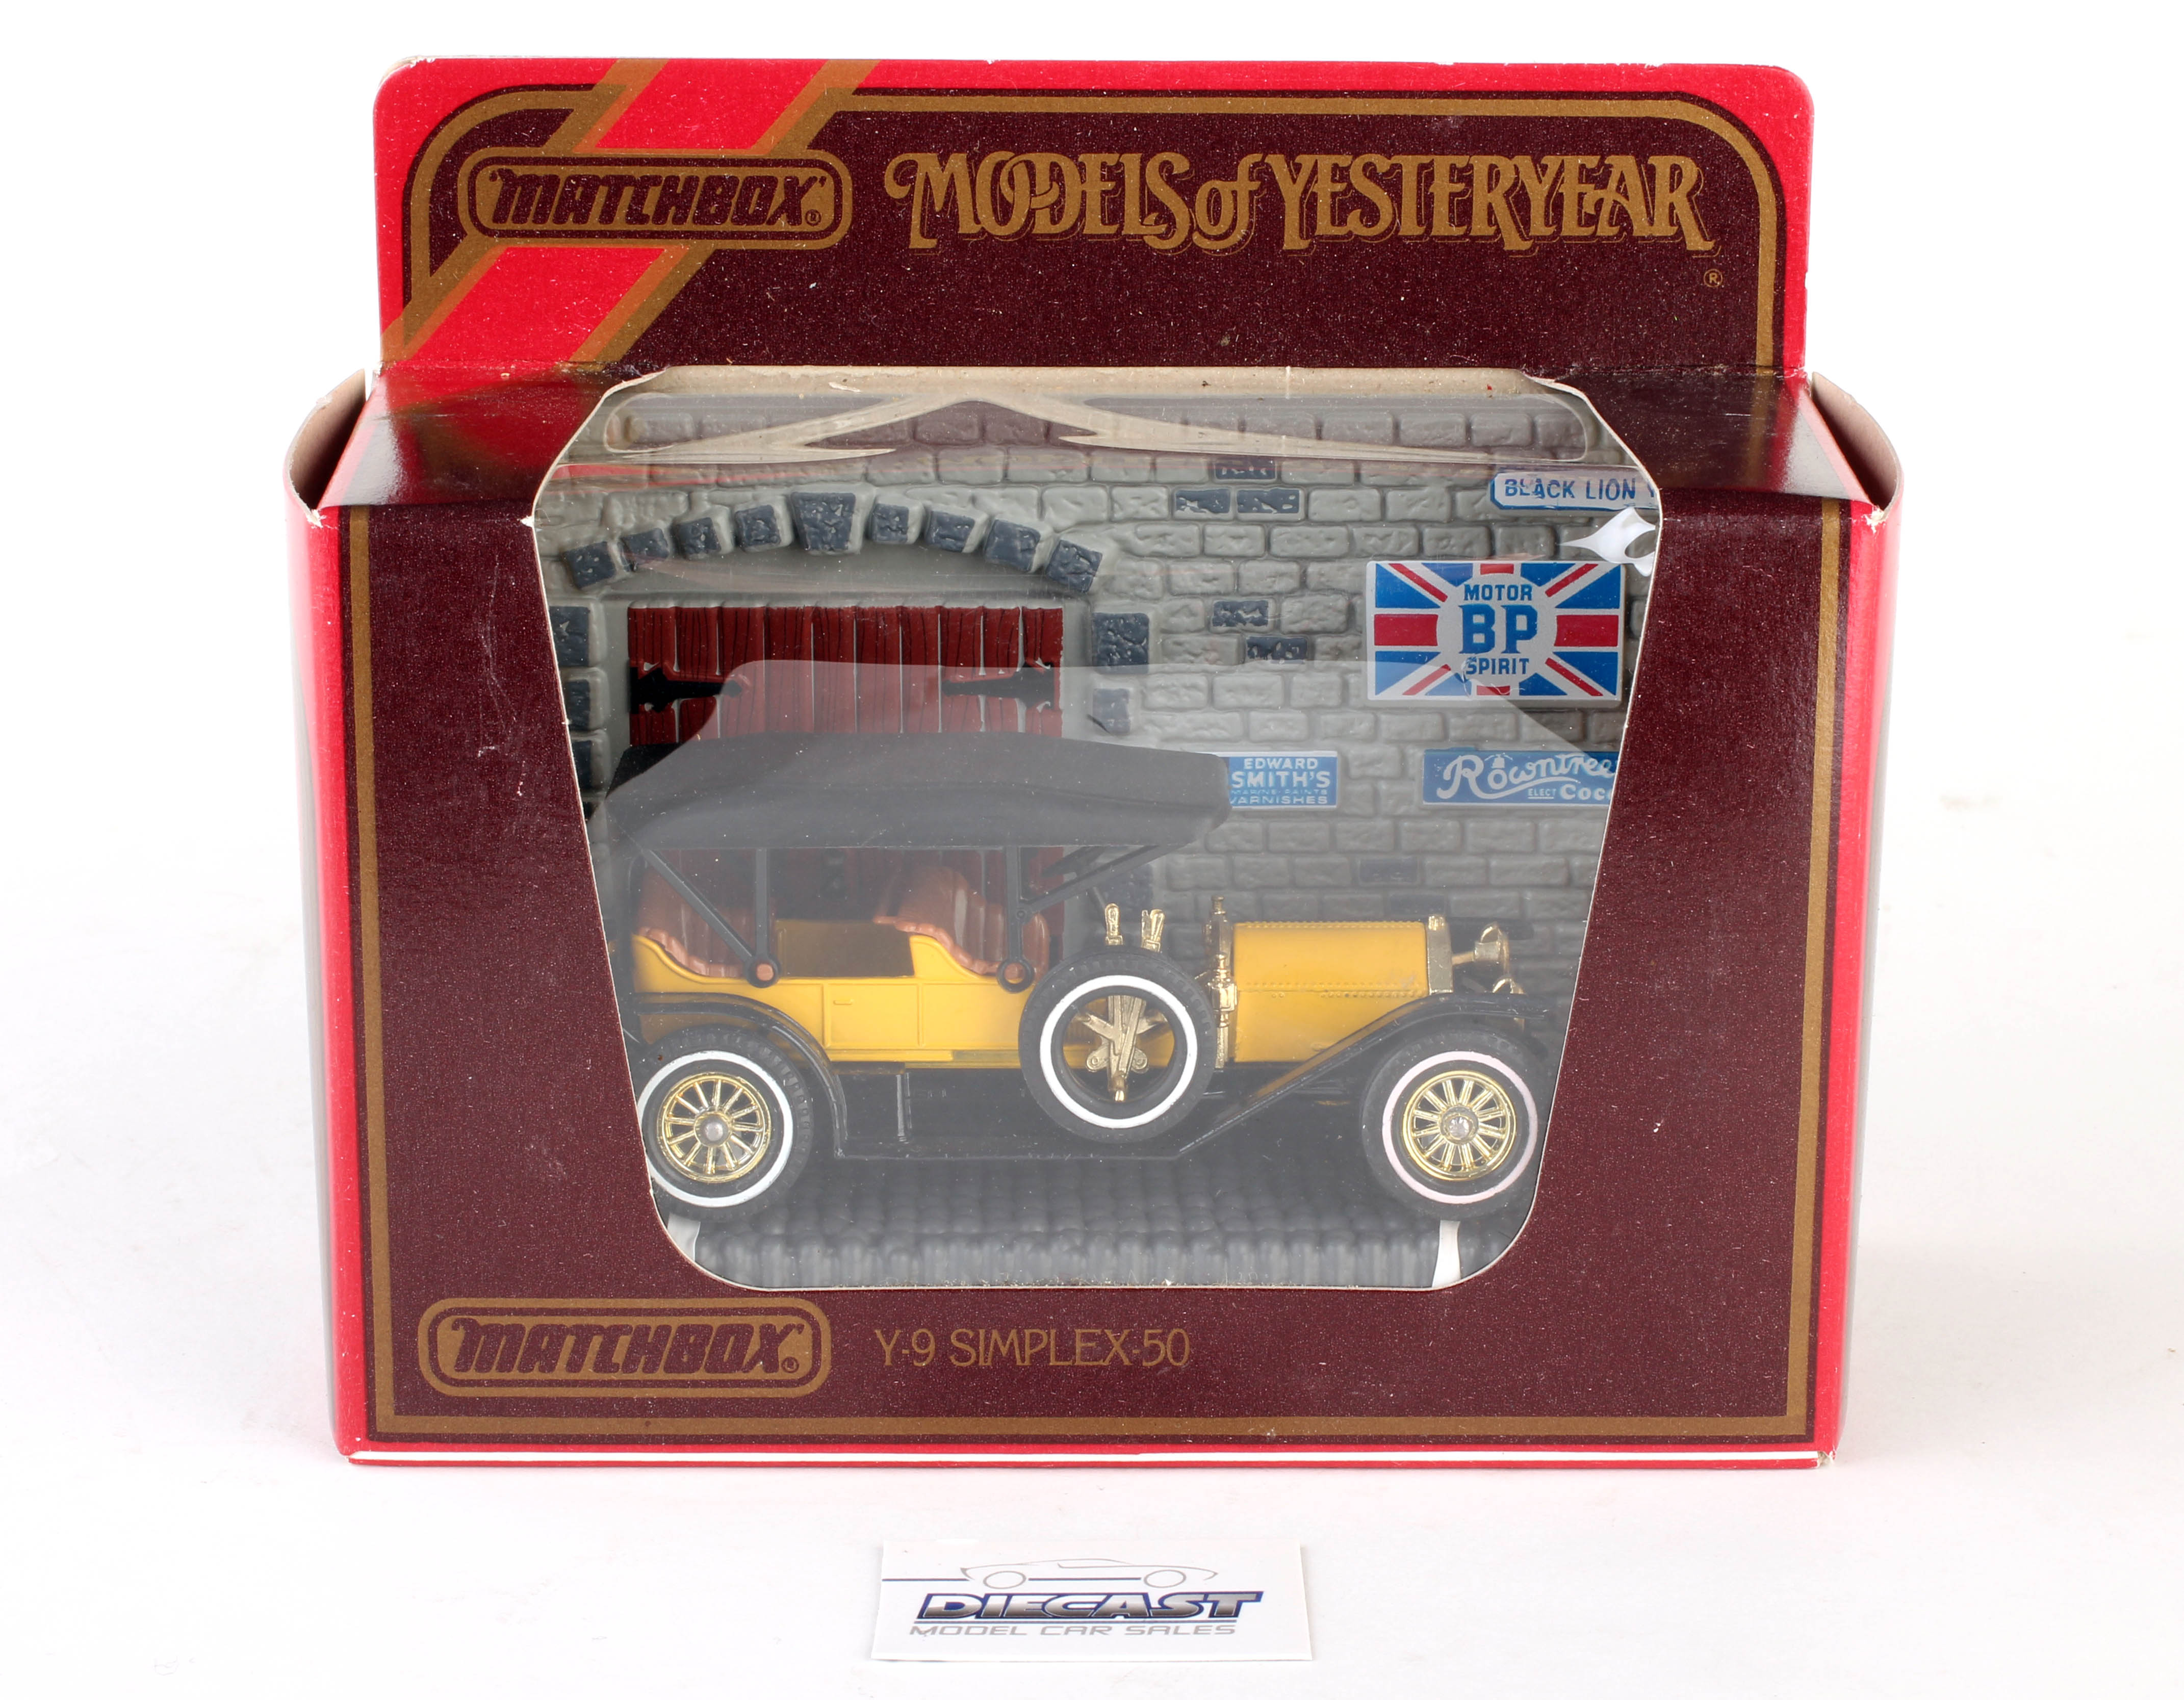 Matchbox 1:48 Models of Yesteryear 1912 Simplex-50 (Yellow and Black) - Y-9